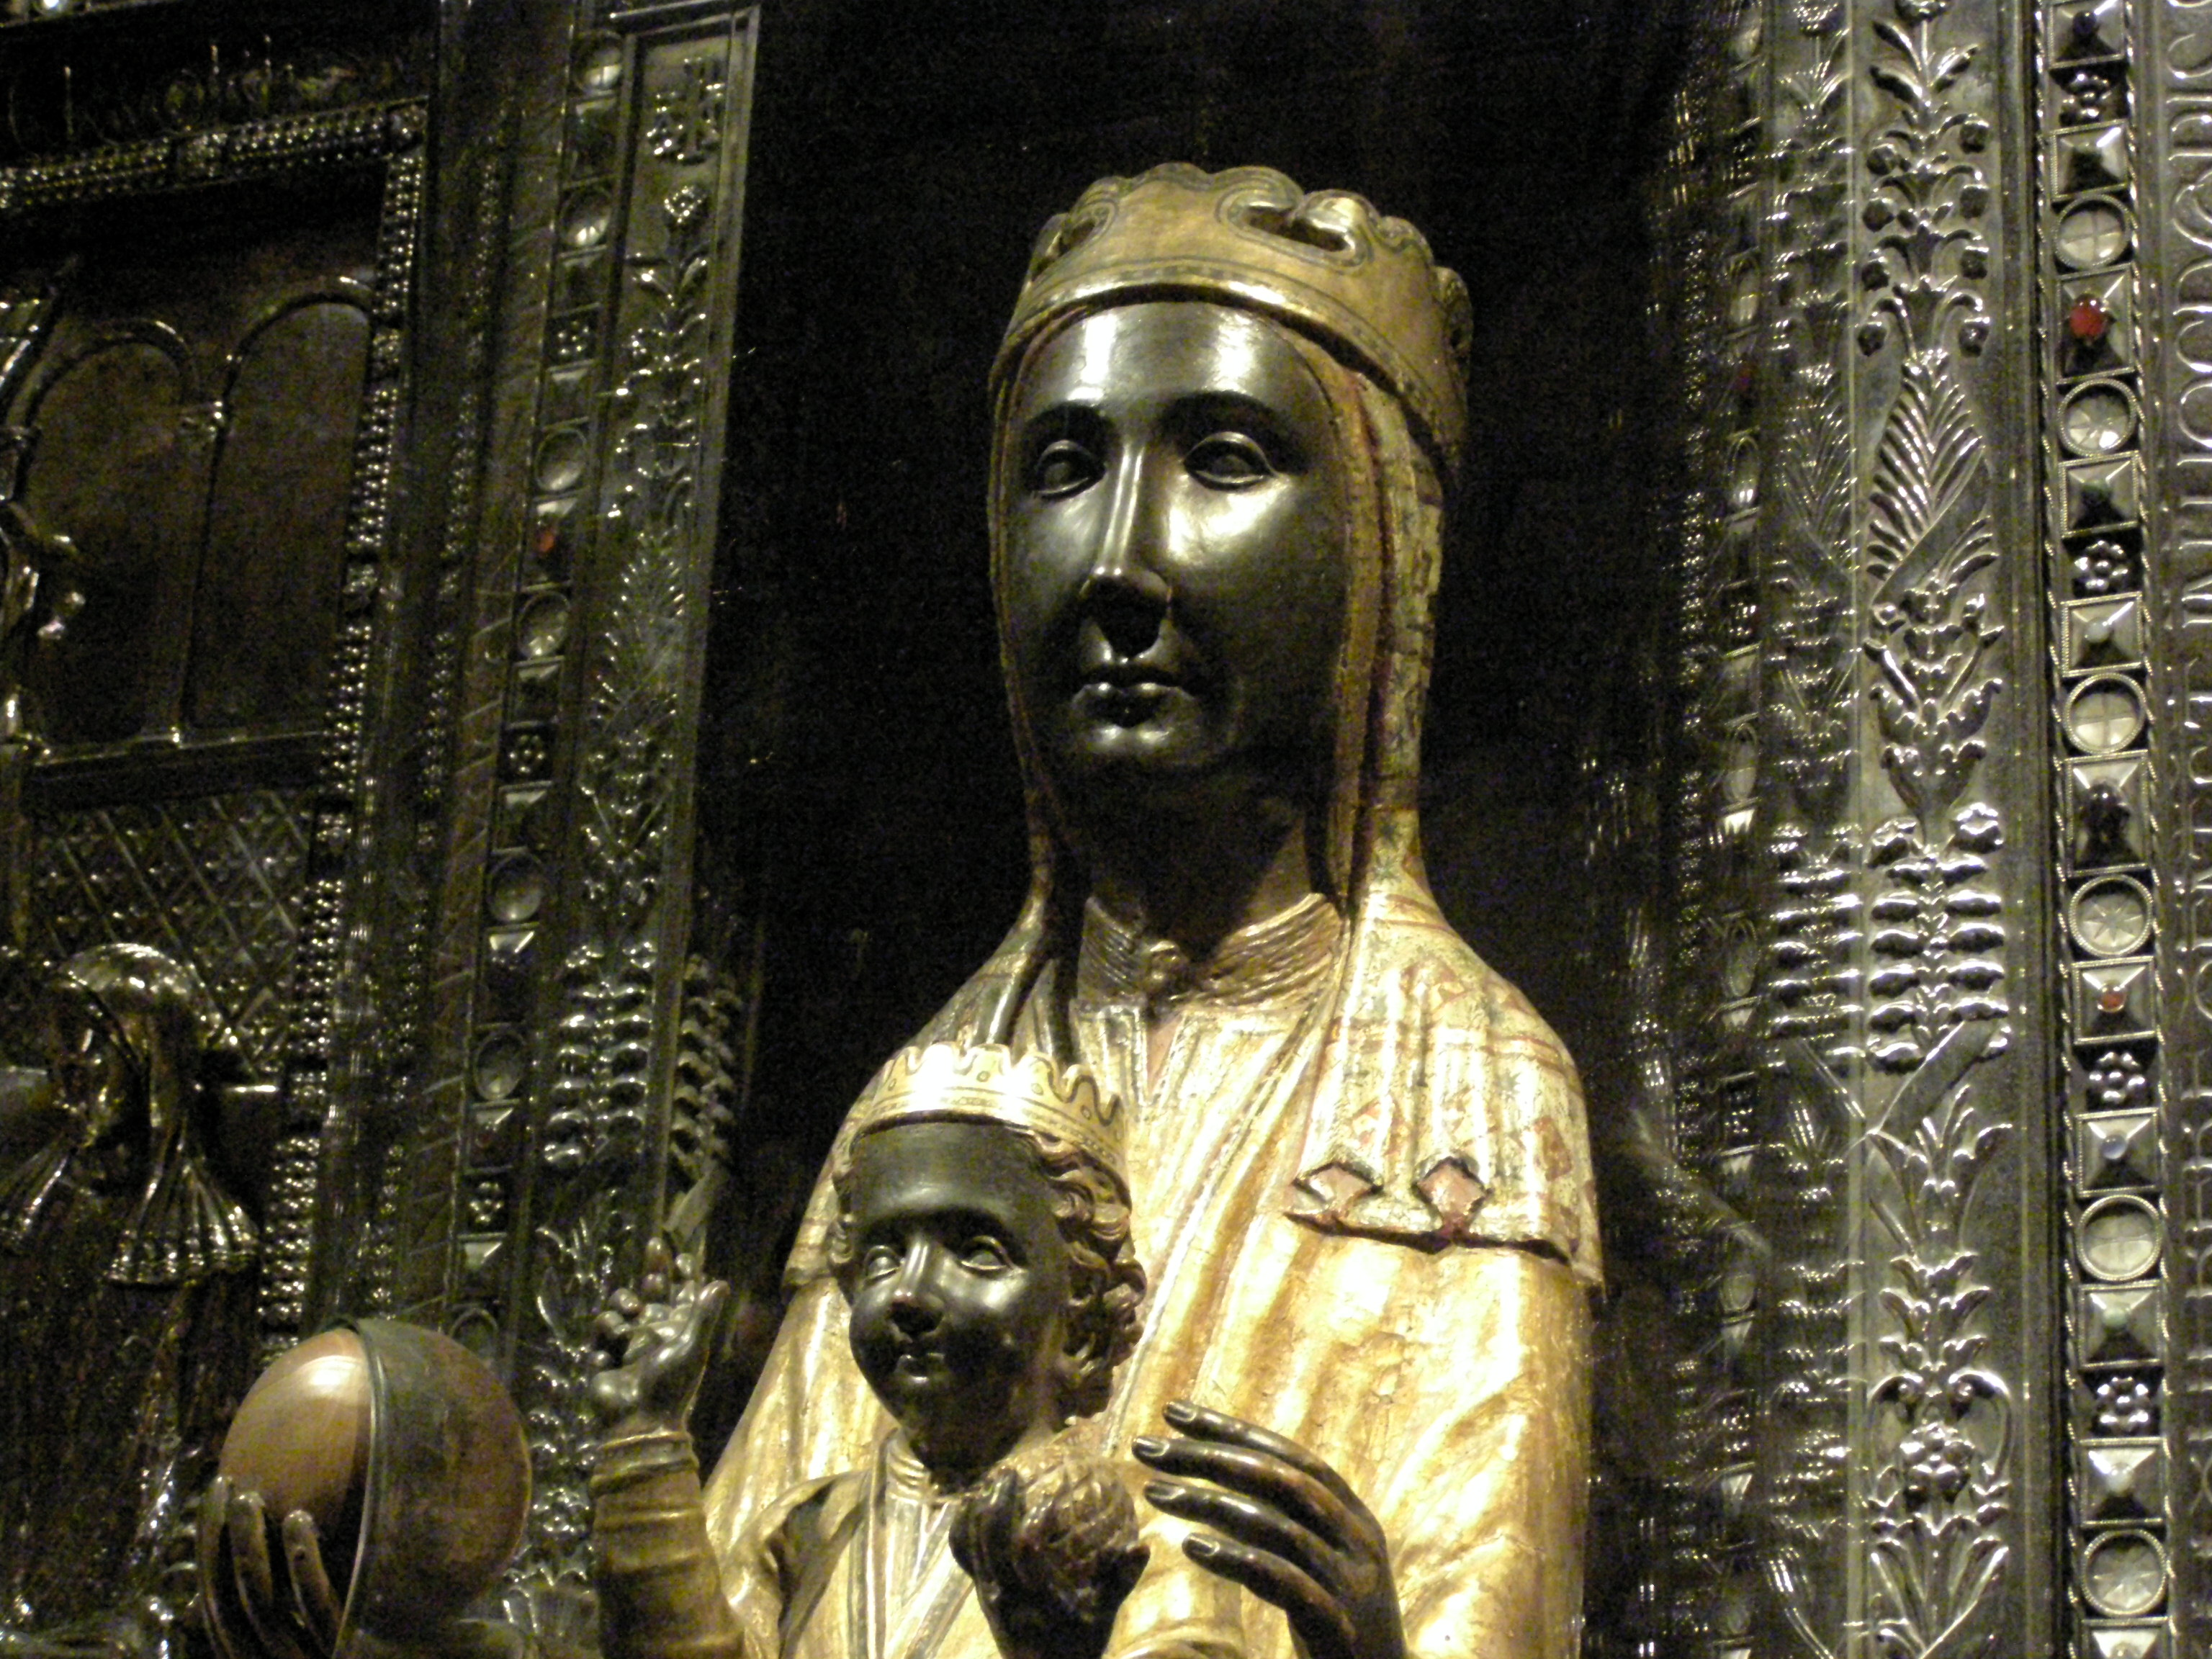 The Black Virgin of Monserrat